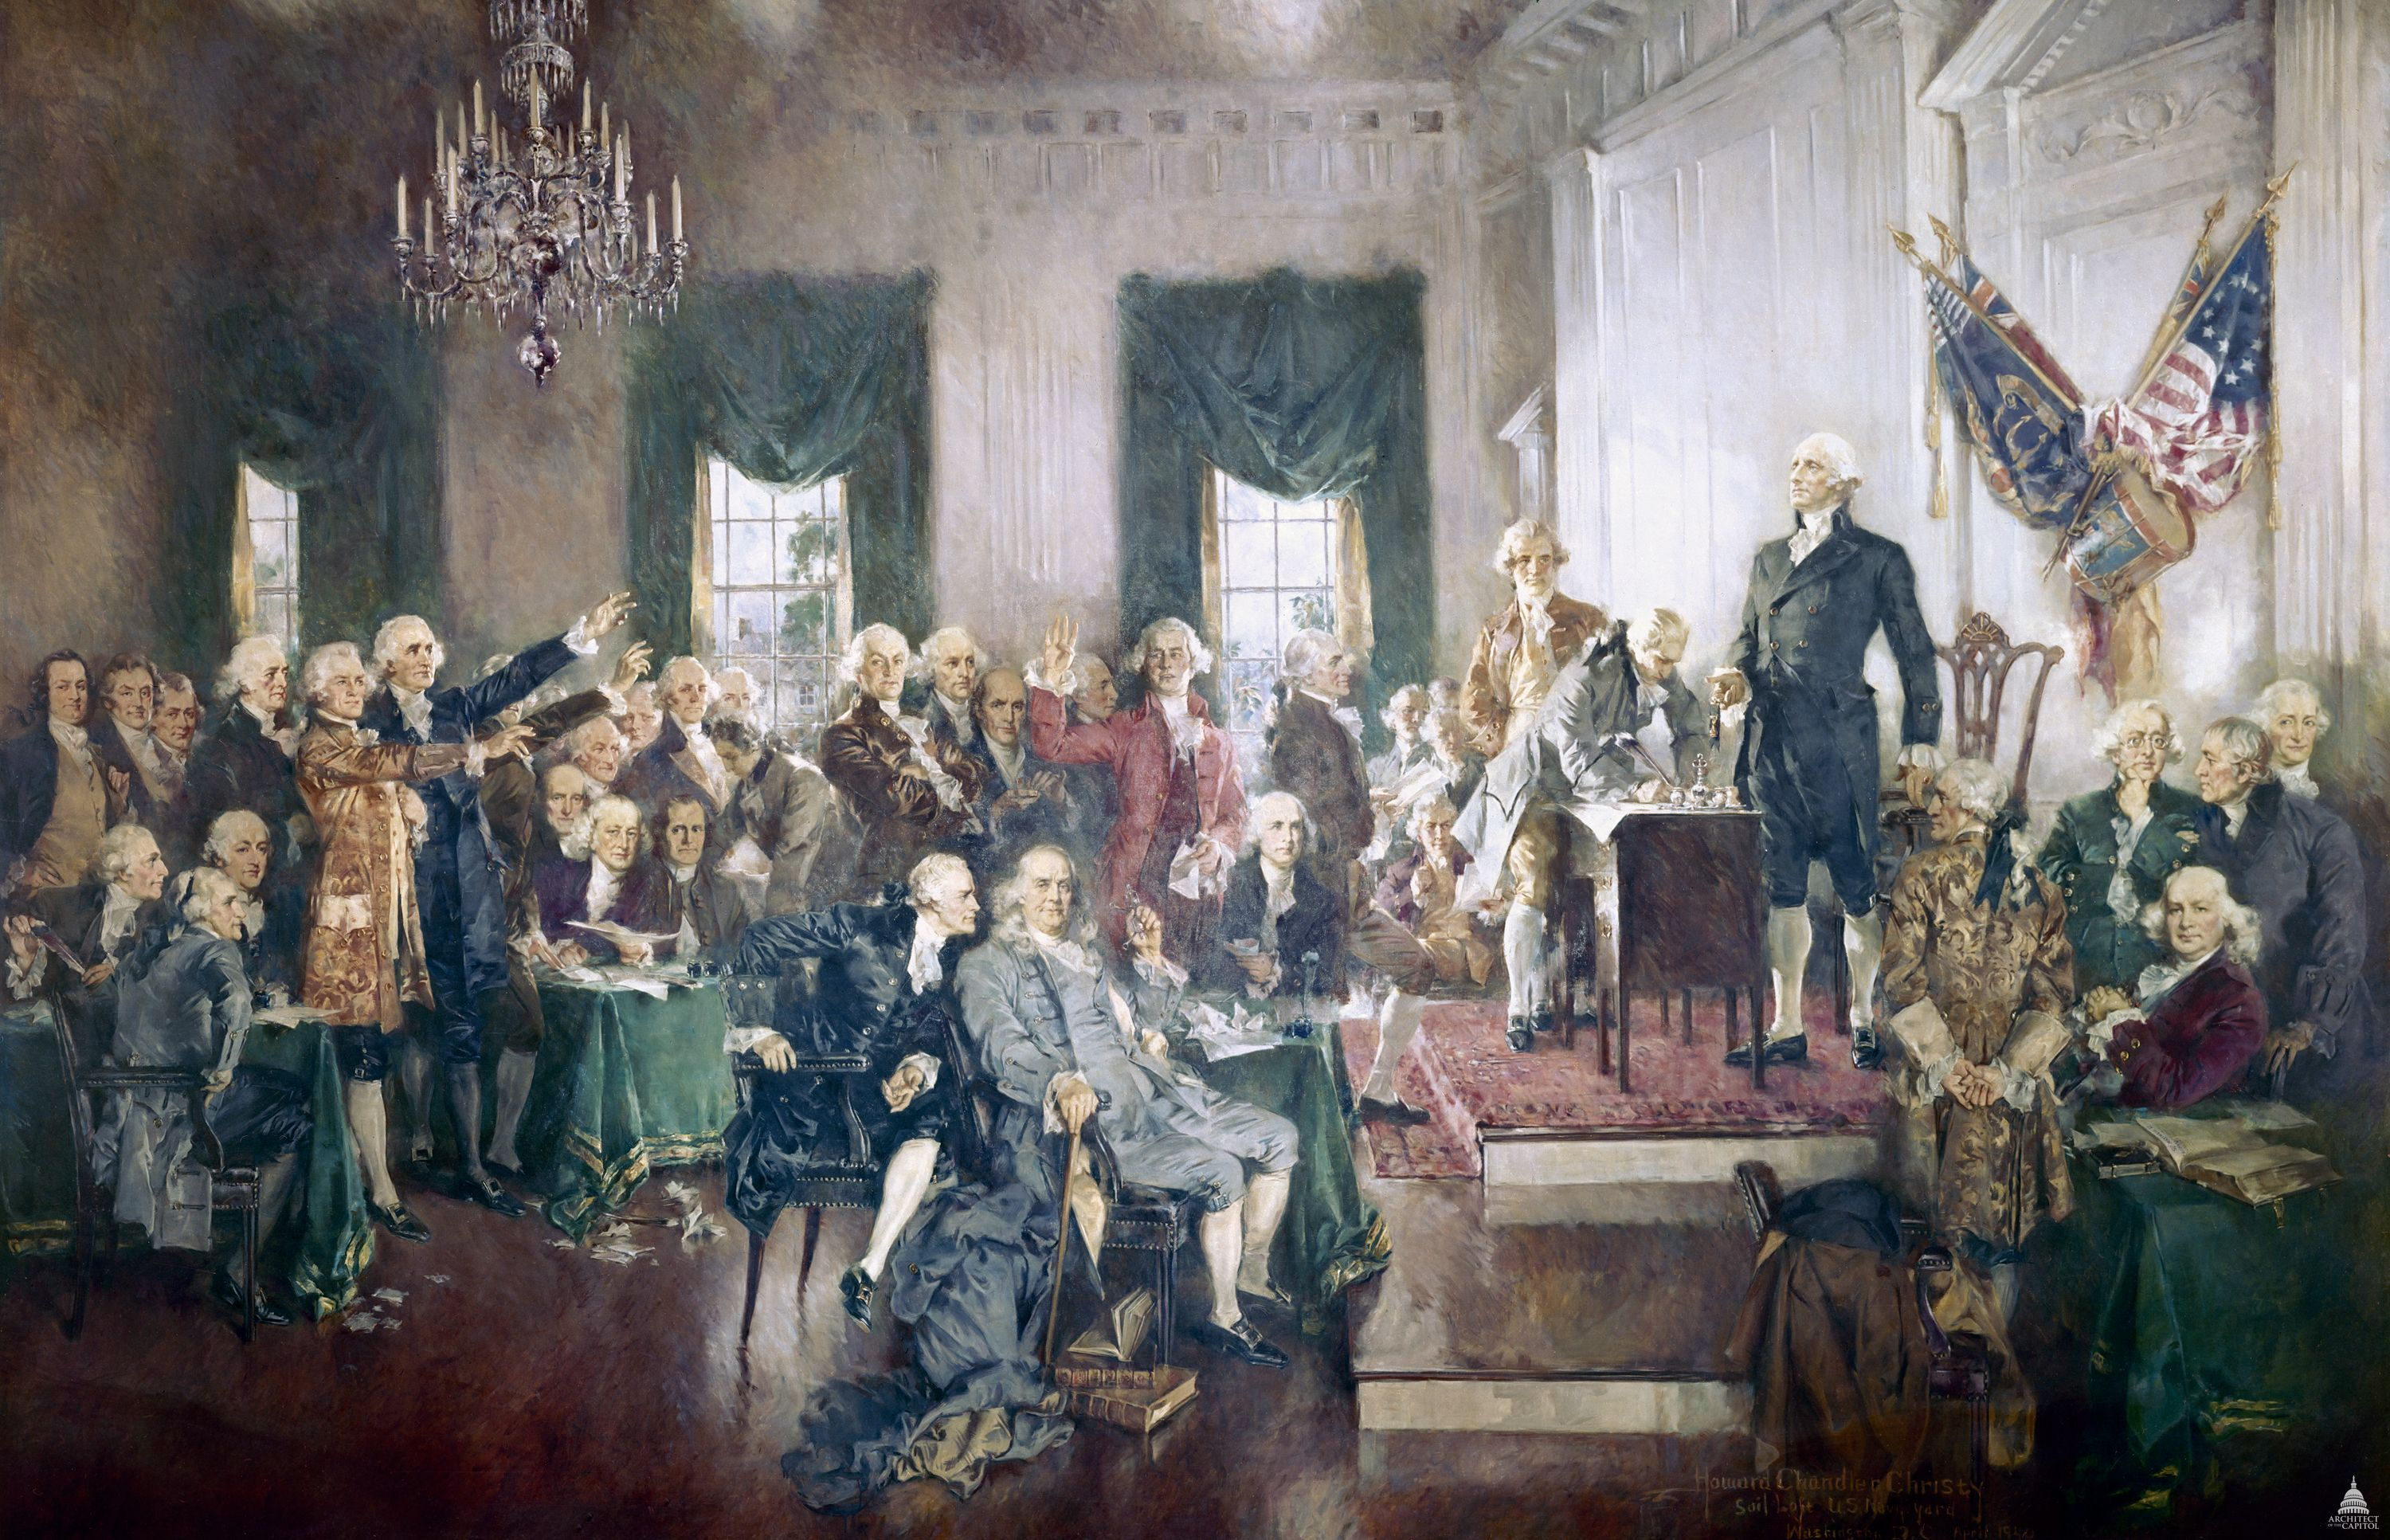 Image of painting of the signing of the American Constitution